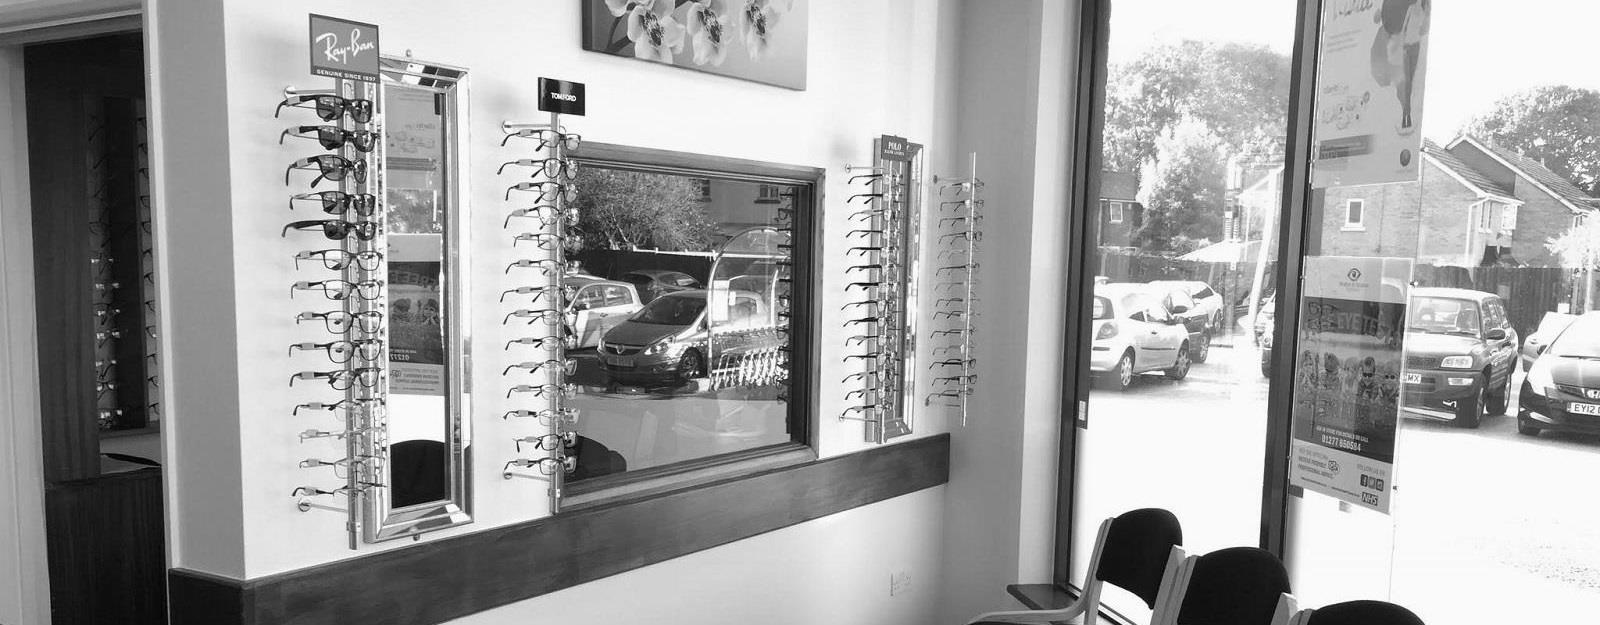 Opticians Billericay